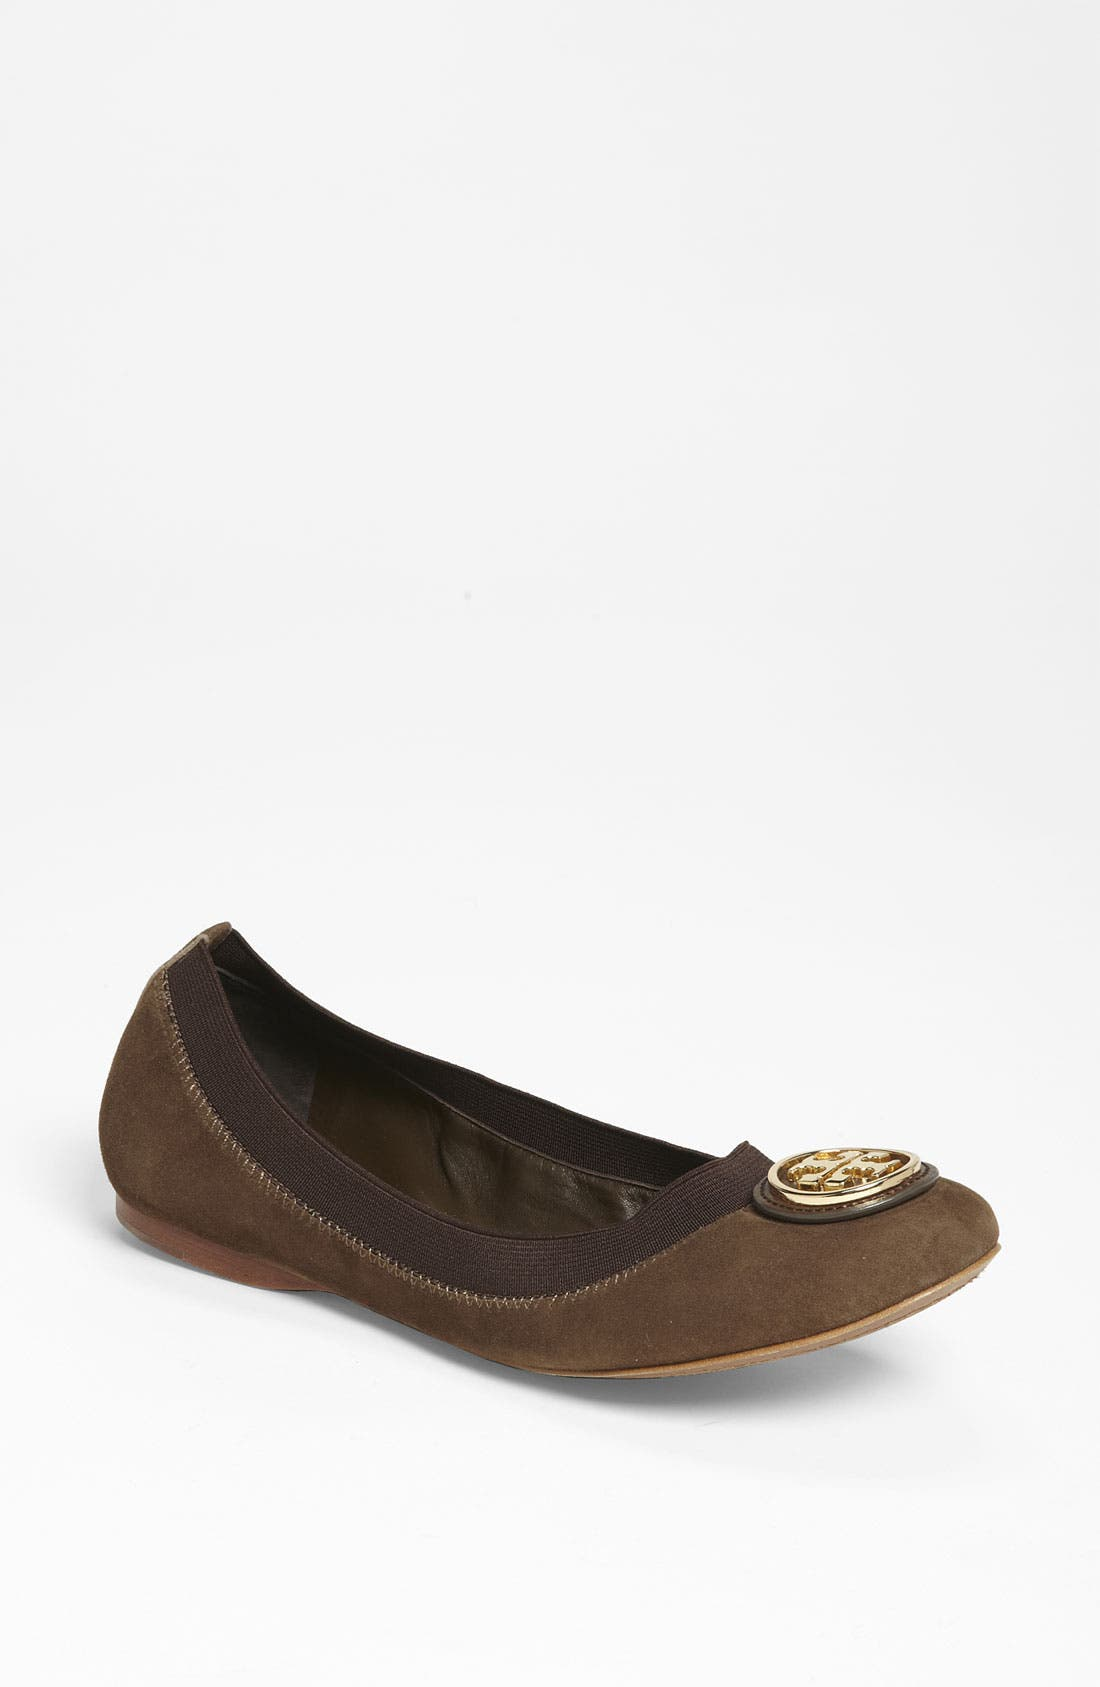 Alternate Image 1 Selected - Tory Burch 'Caroline 2' Flat